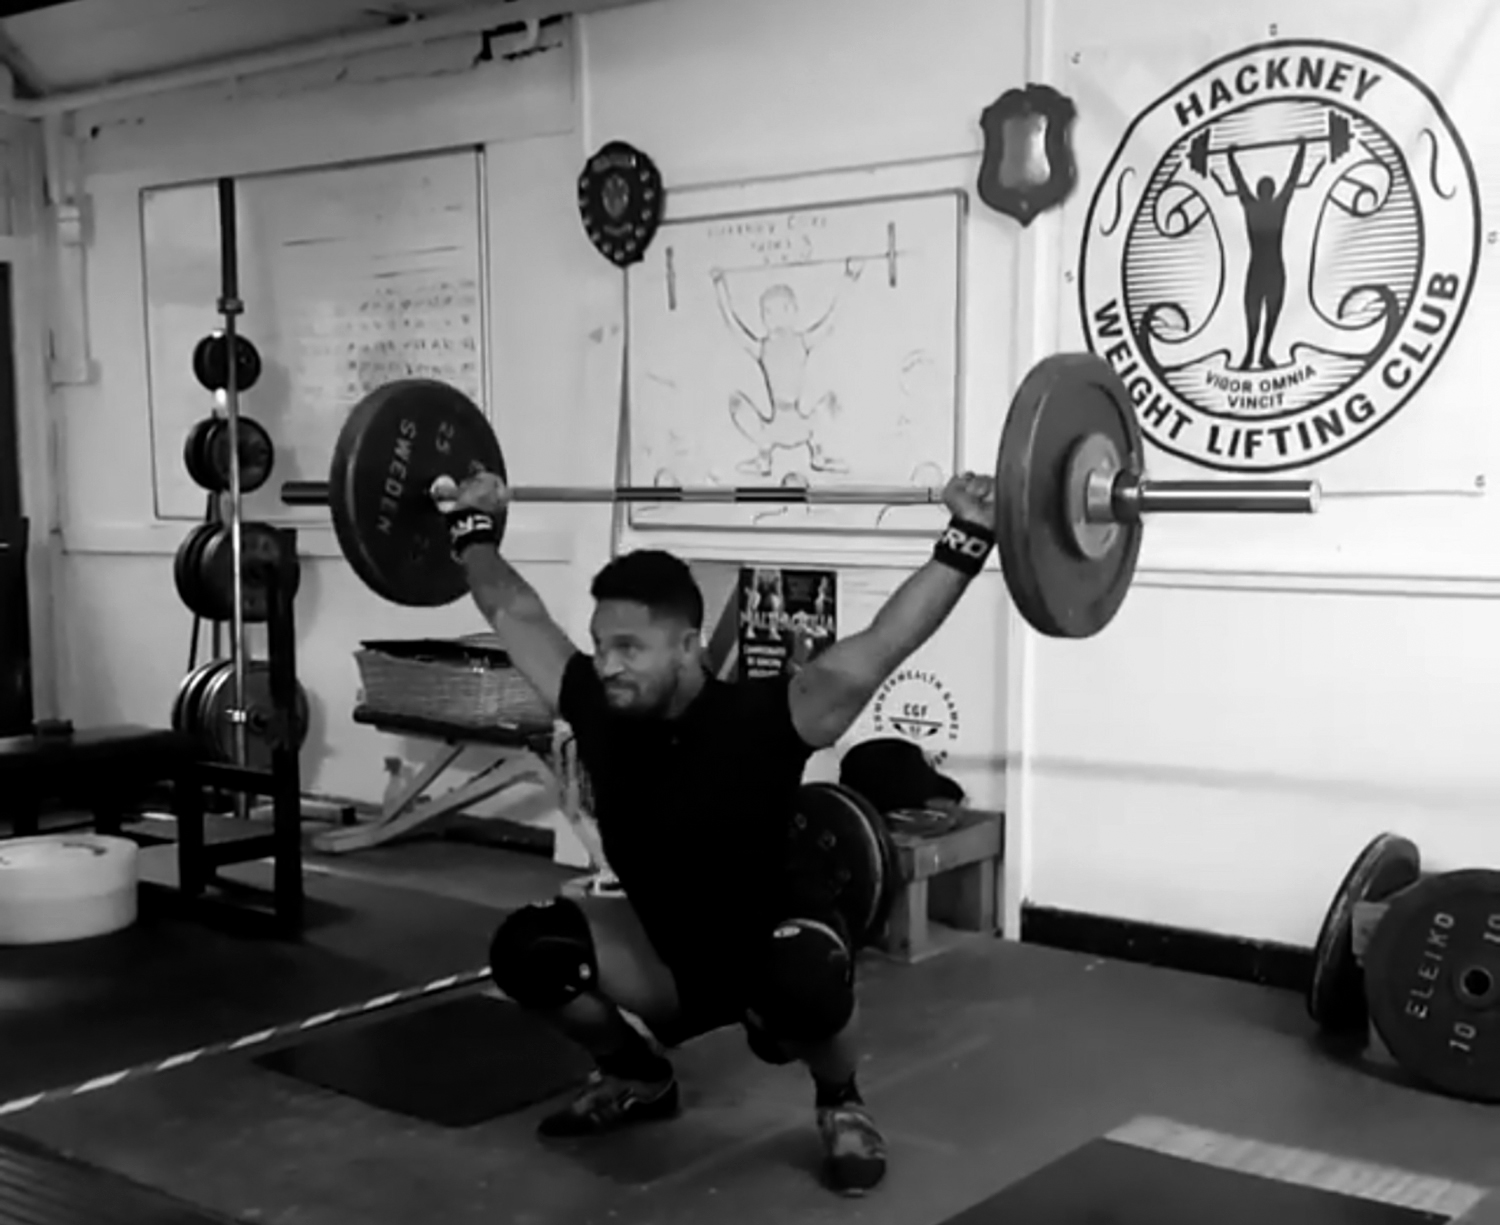 Olympic Weightlifting Classes… -